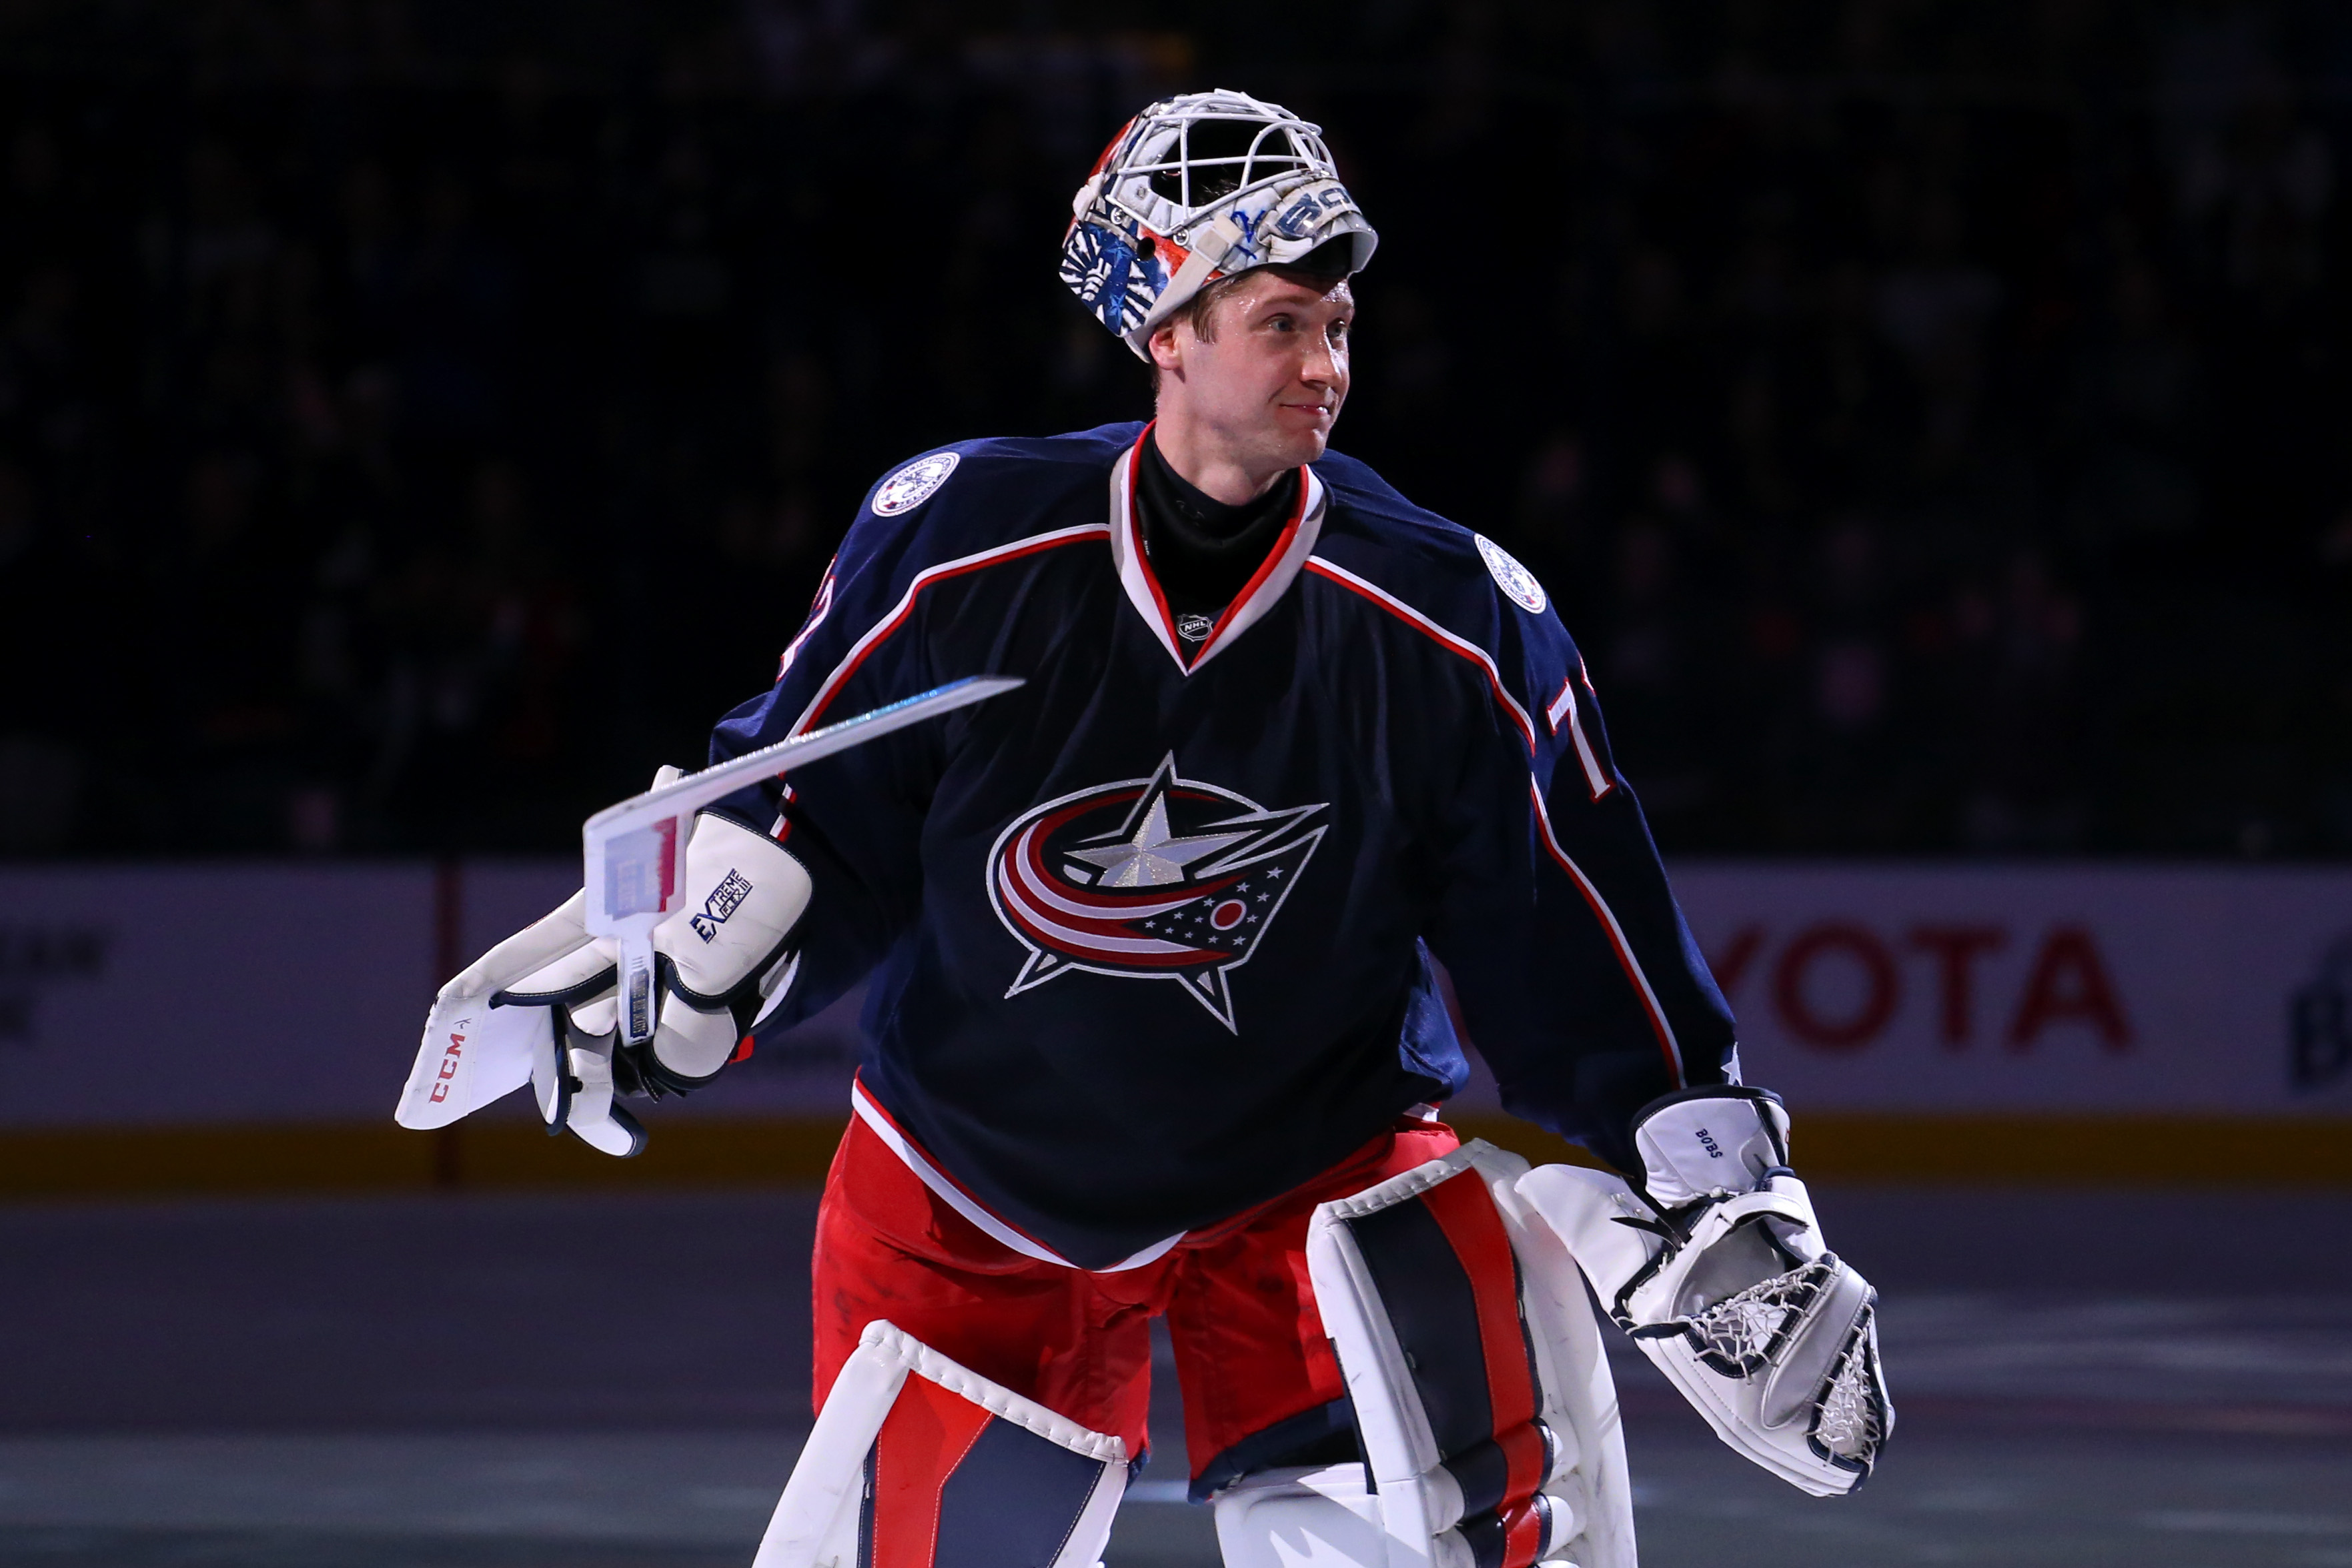 Bobrovsky:  Just about perfect this year.